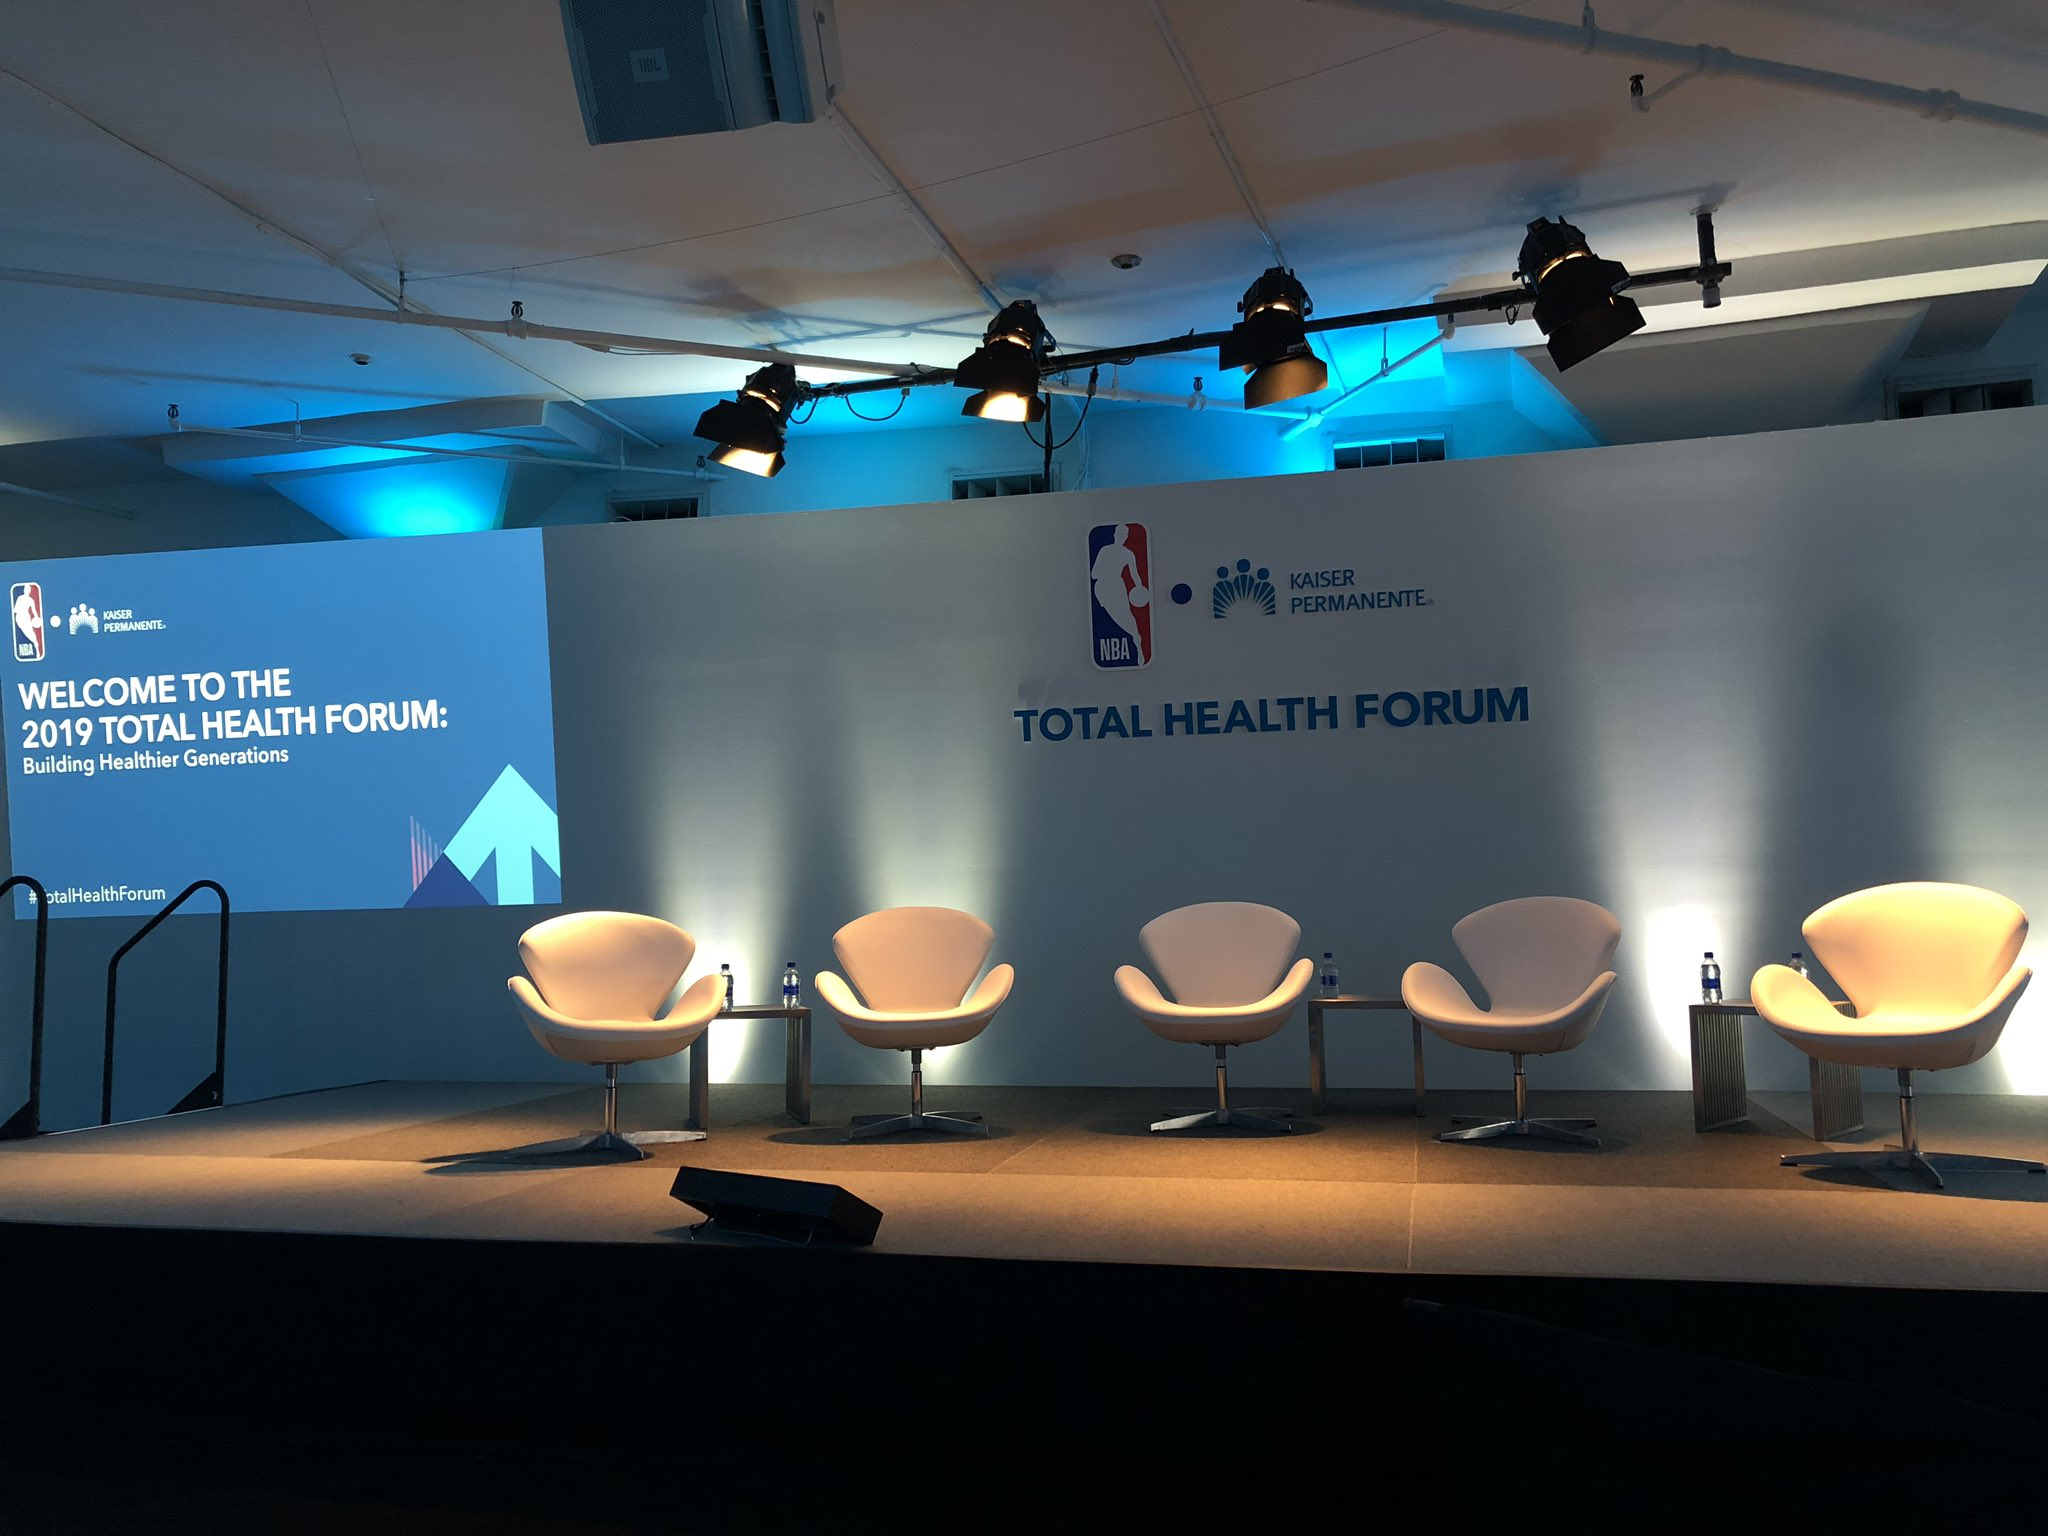 We're underway at our 4th annual #TotalHealthForum with @KPShare! https://t.co/eT6cPONG4U